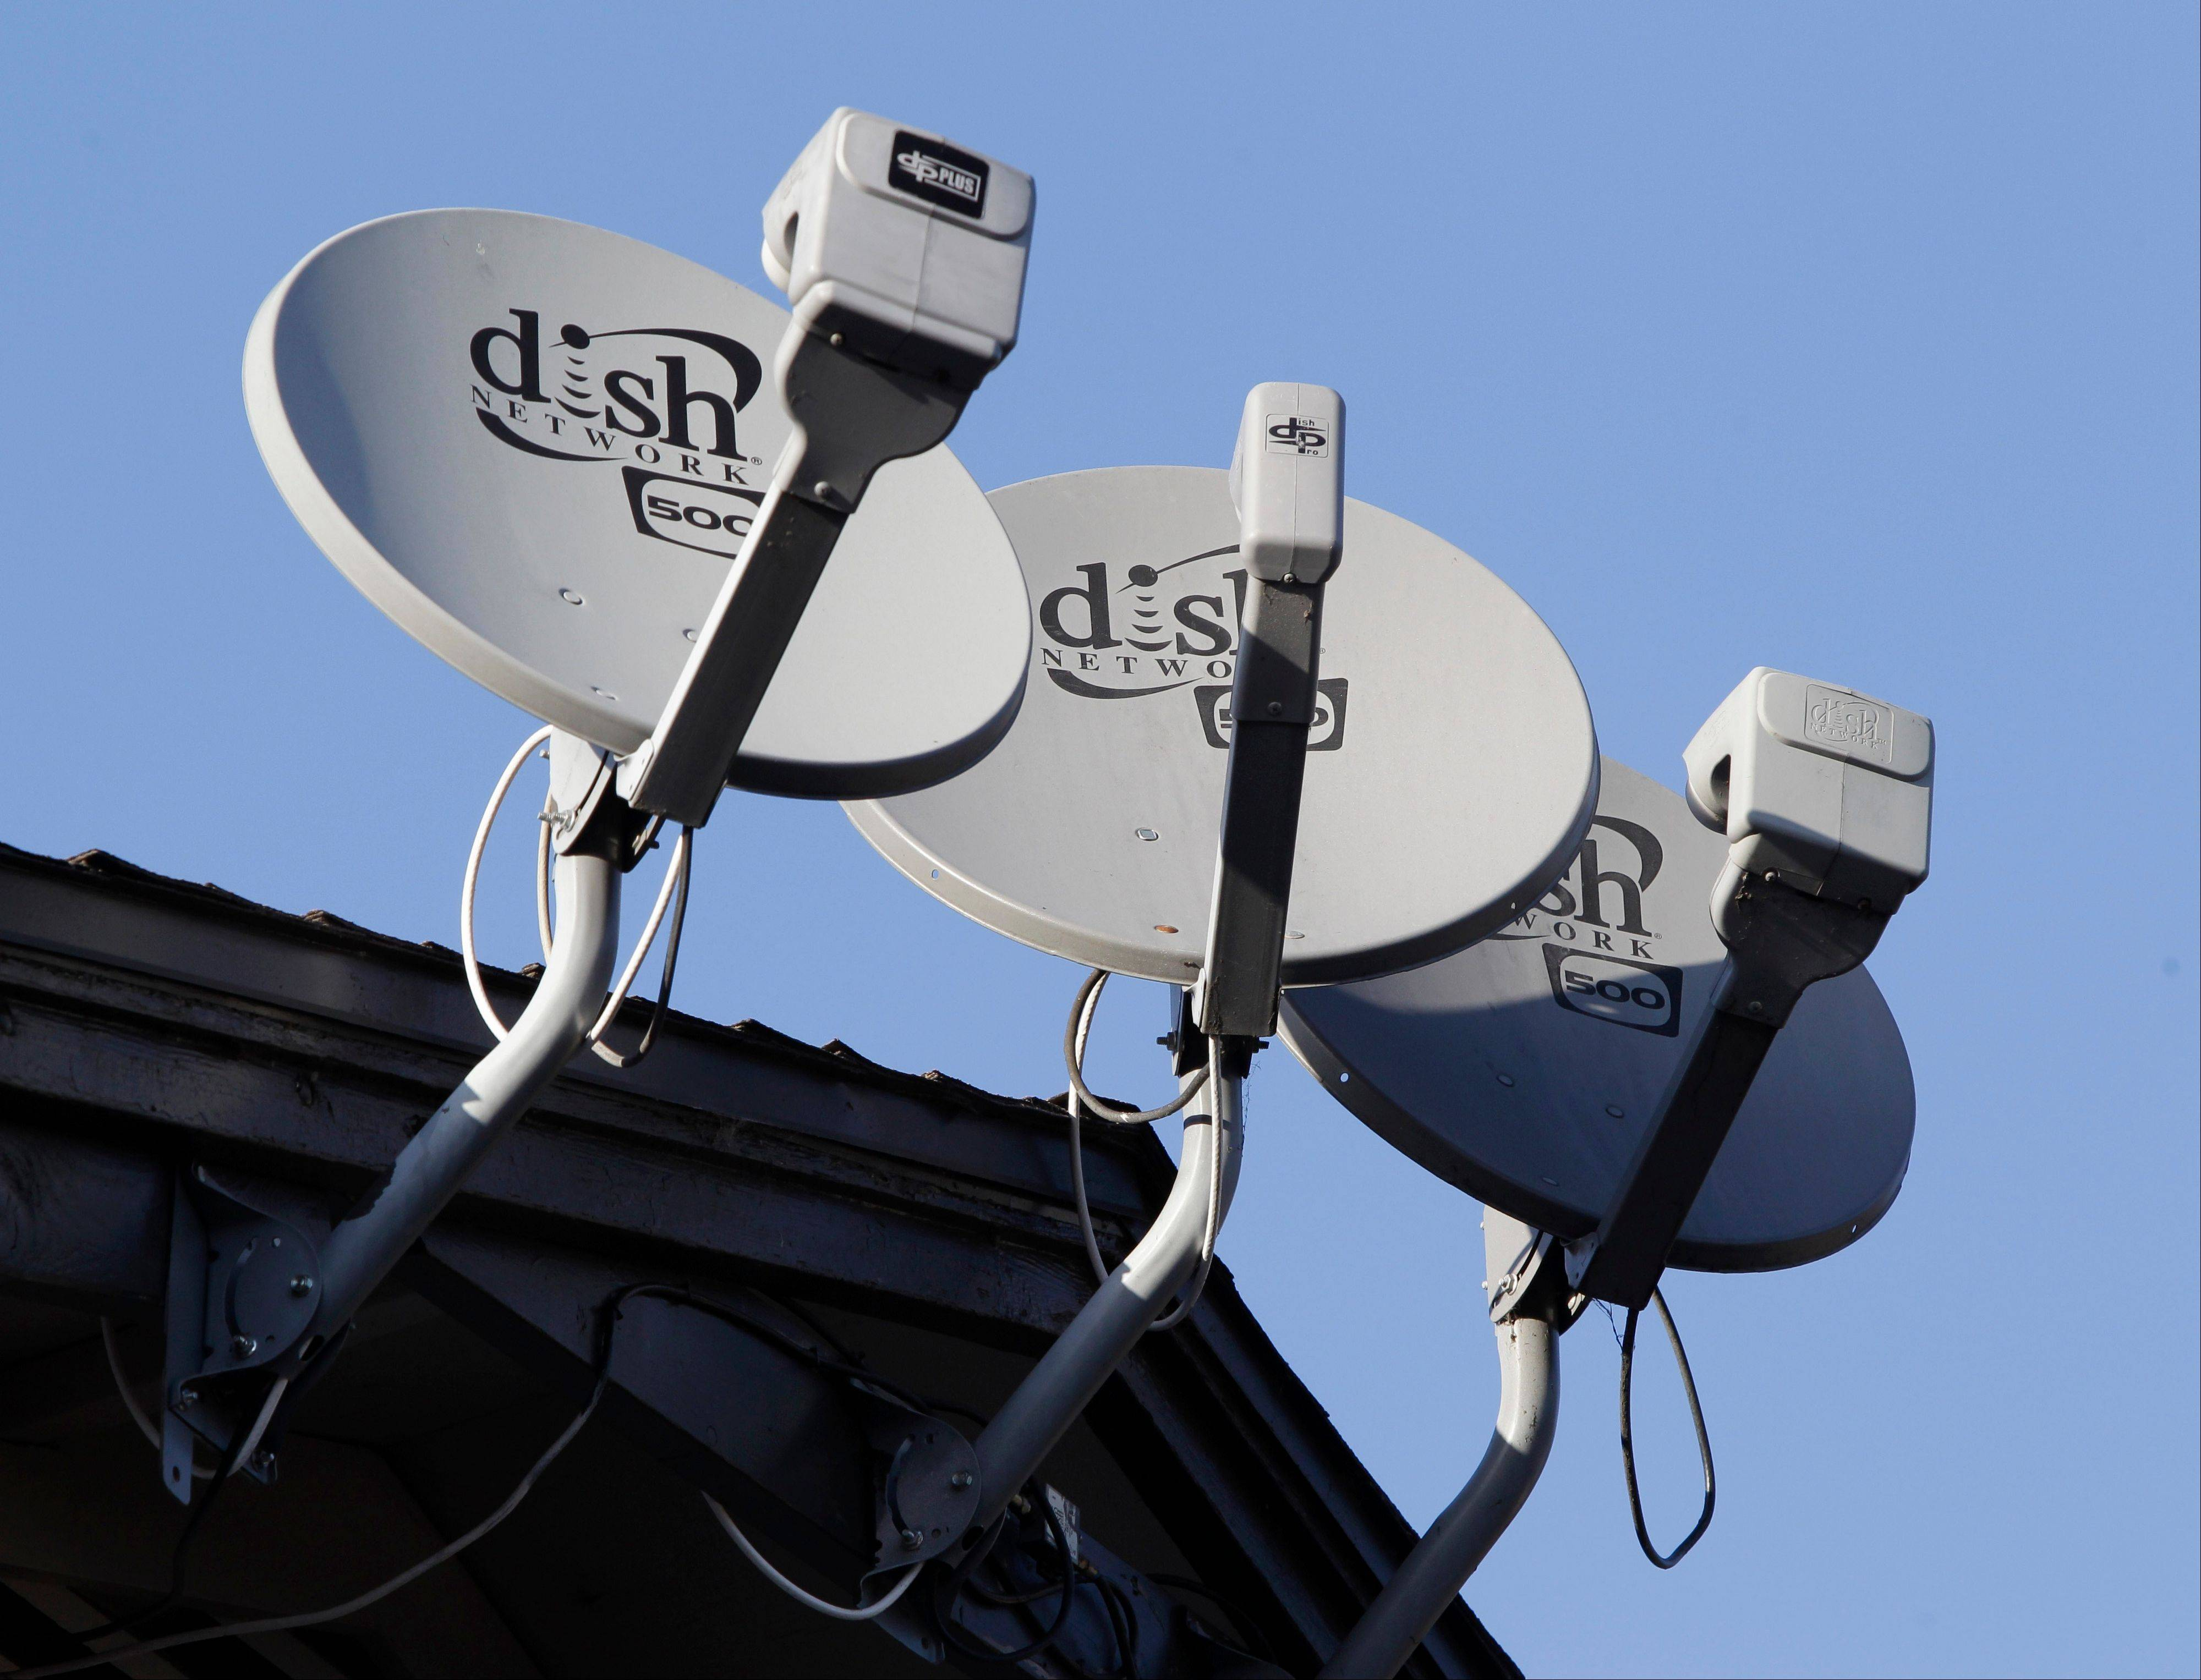 Cablevision Systems Corp. and AMC Networks say they have reached a settlement with Dish Network related to Voom HD Holdings.